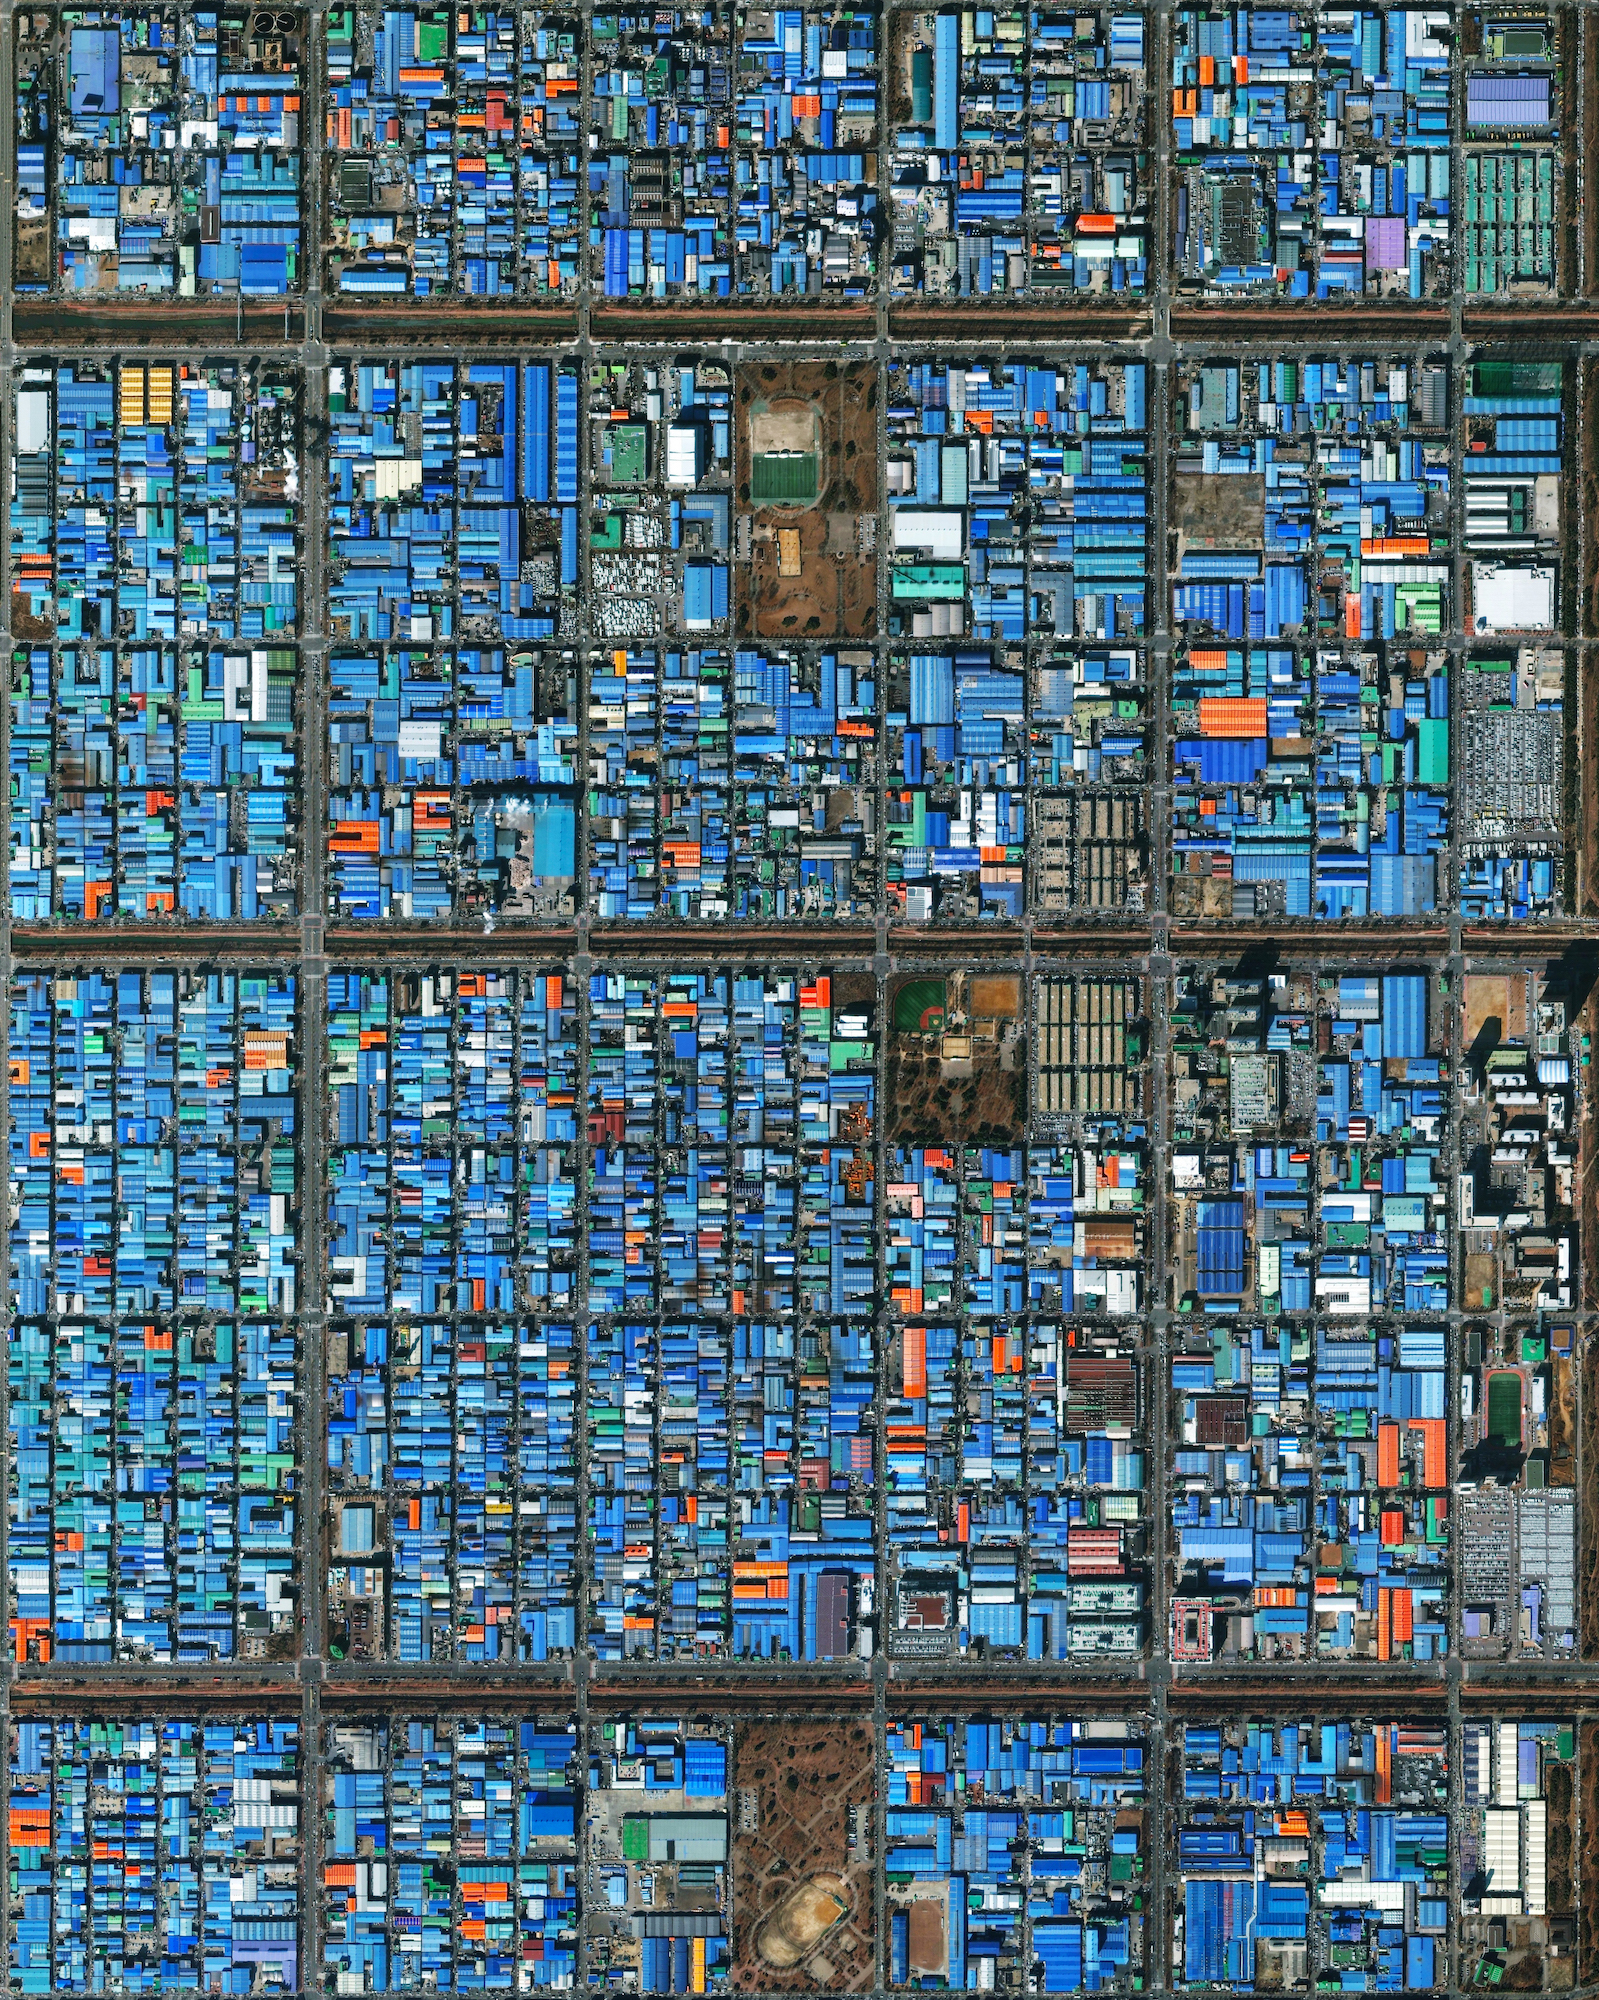 7/2/2016  Jeongwang-dong  Ansan, South Korea  37.336147372°, 126.718586767°     Jeongwang-dong is an industrial sector in the city of Ansan, South Korea. The Korean government intensively drove a plan to develop the modern city, particularly in this area, with an emphasis on manufacturing. The striking blue color that you see here results from the use of aluminum roofing, which is used for its low cost and longevity.